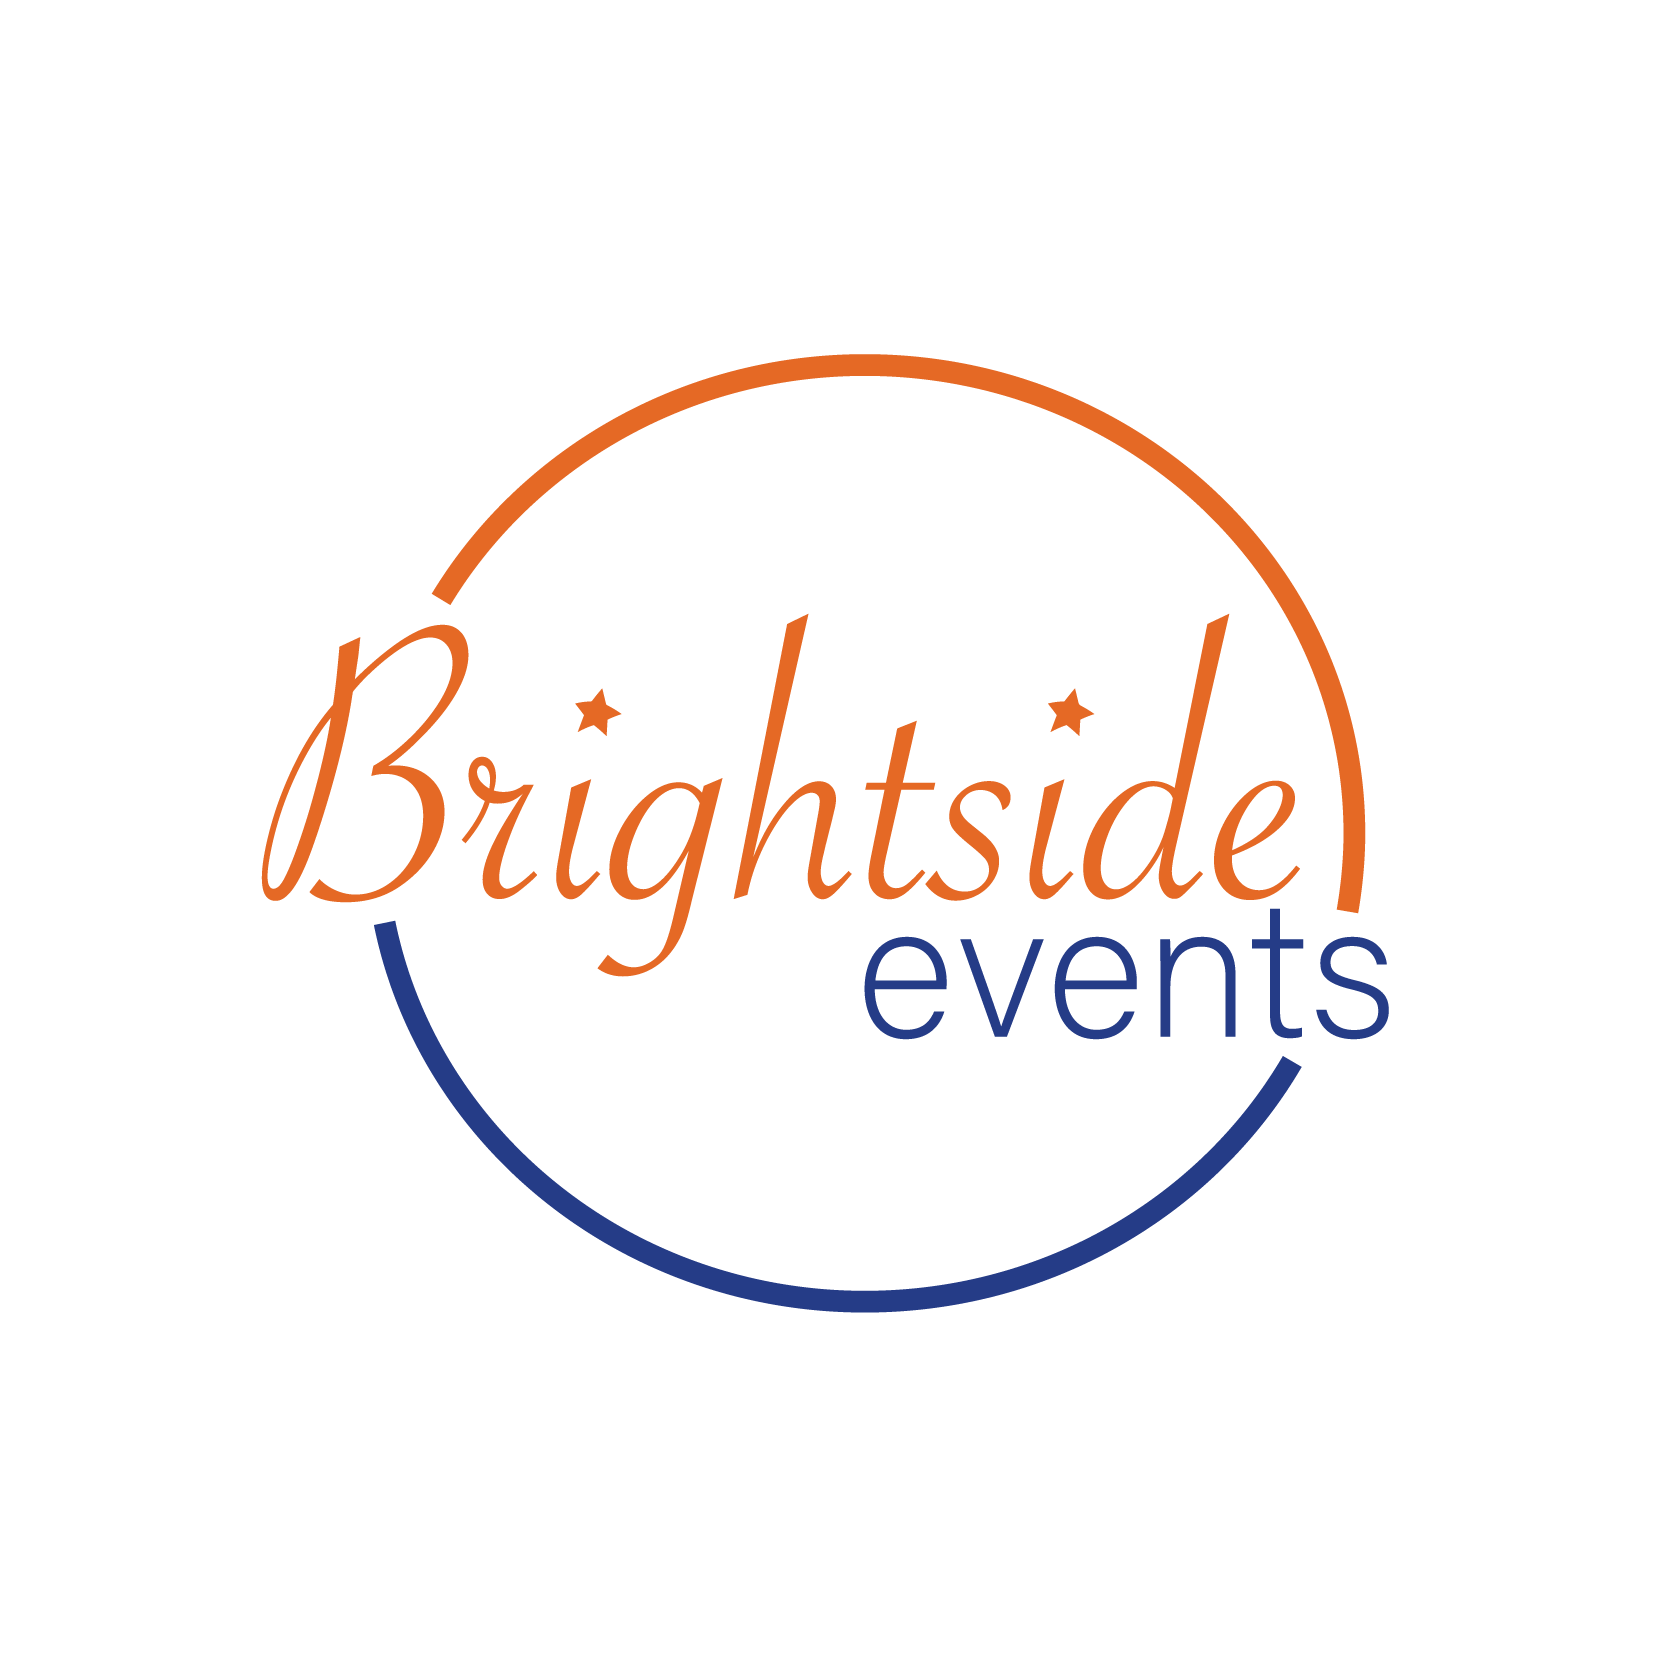 Brightside Events logo